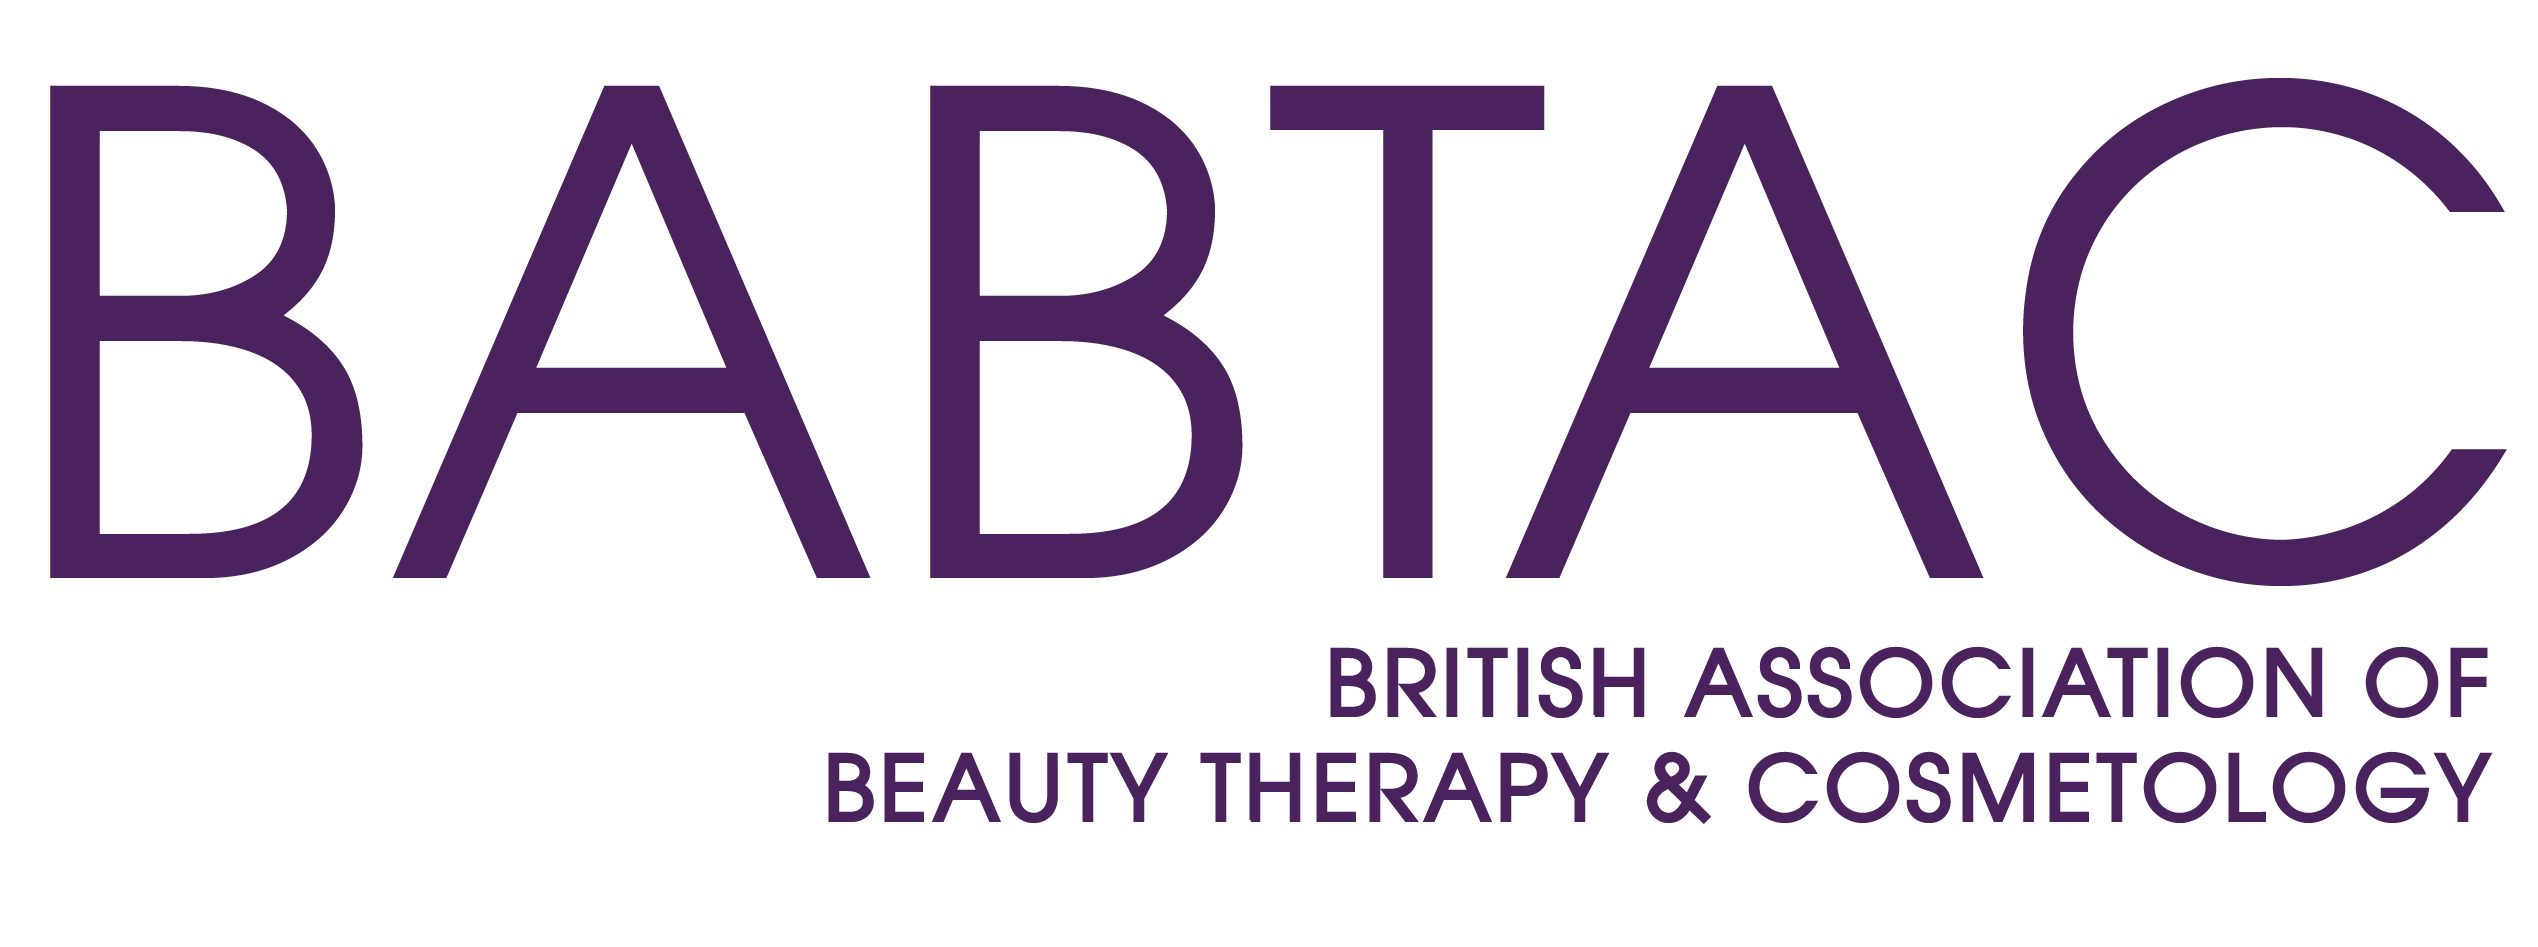 BABTAC British Association of Beauty Therapy & Cosmetology